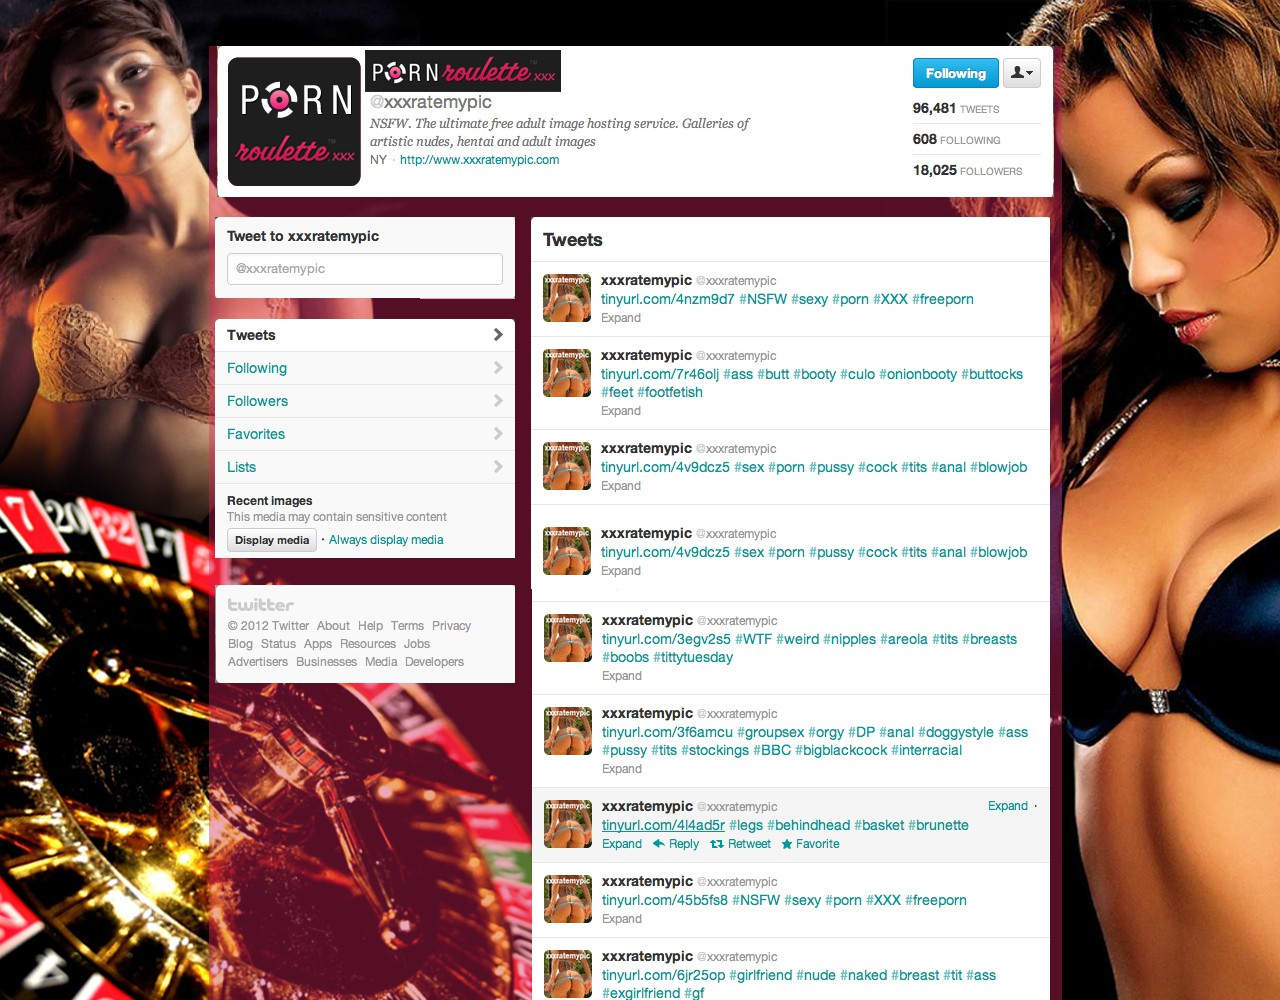 Porn Roulette needs a new twitter background